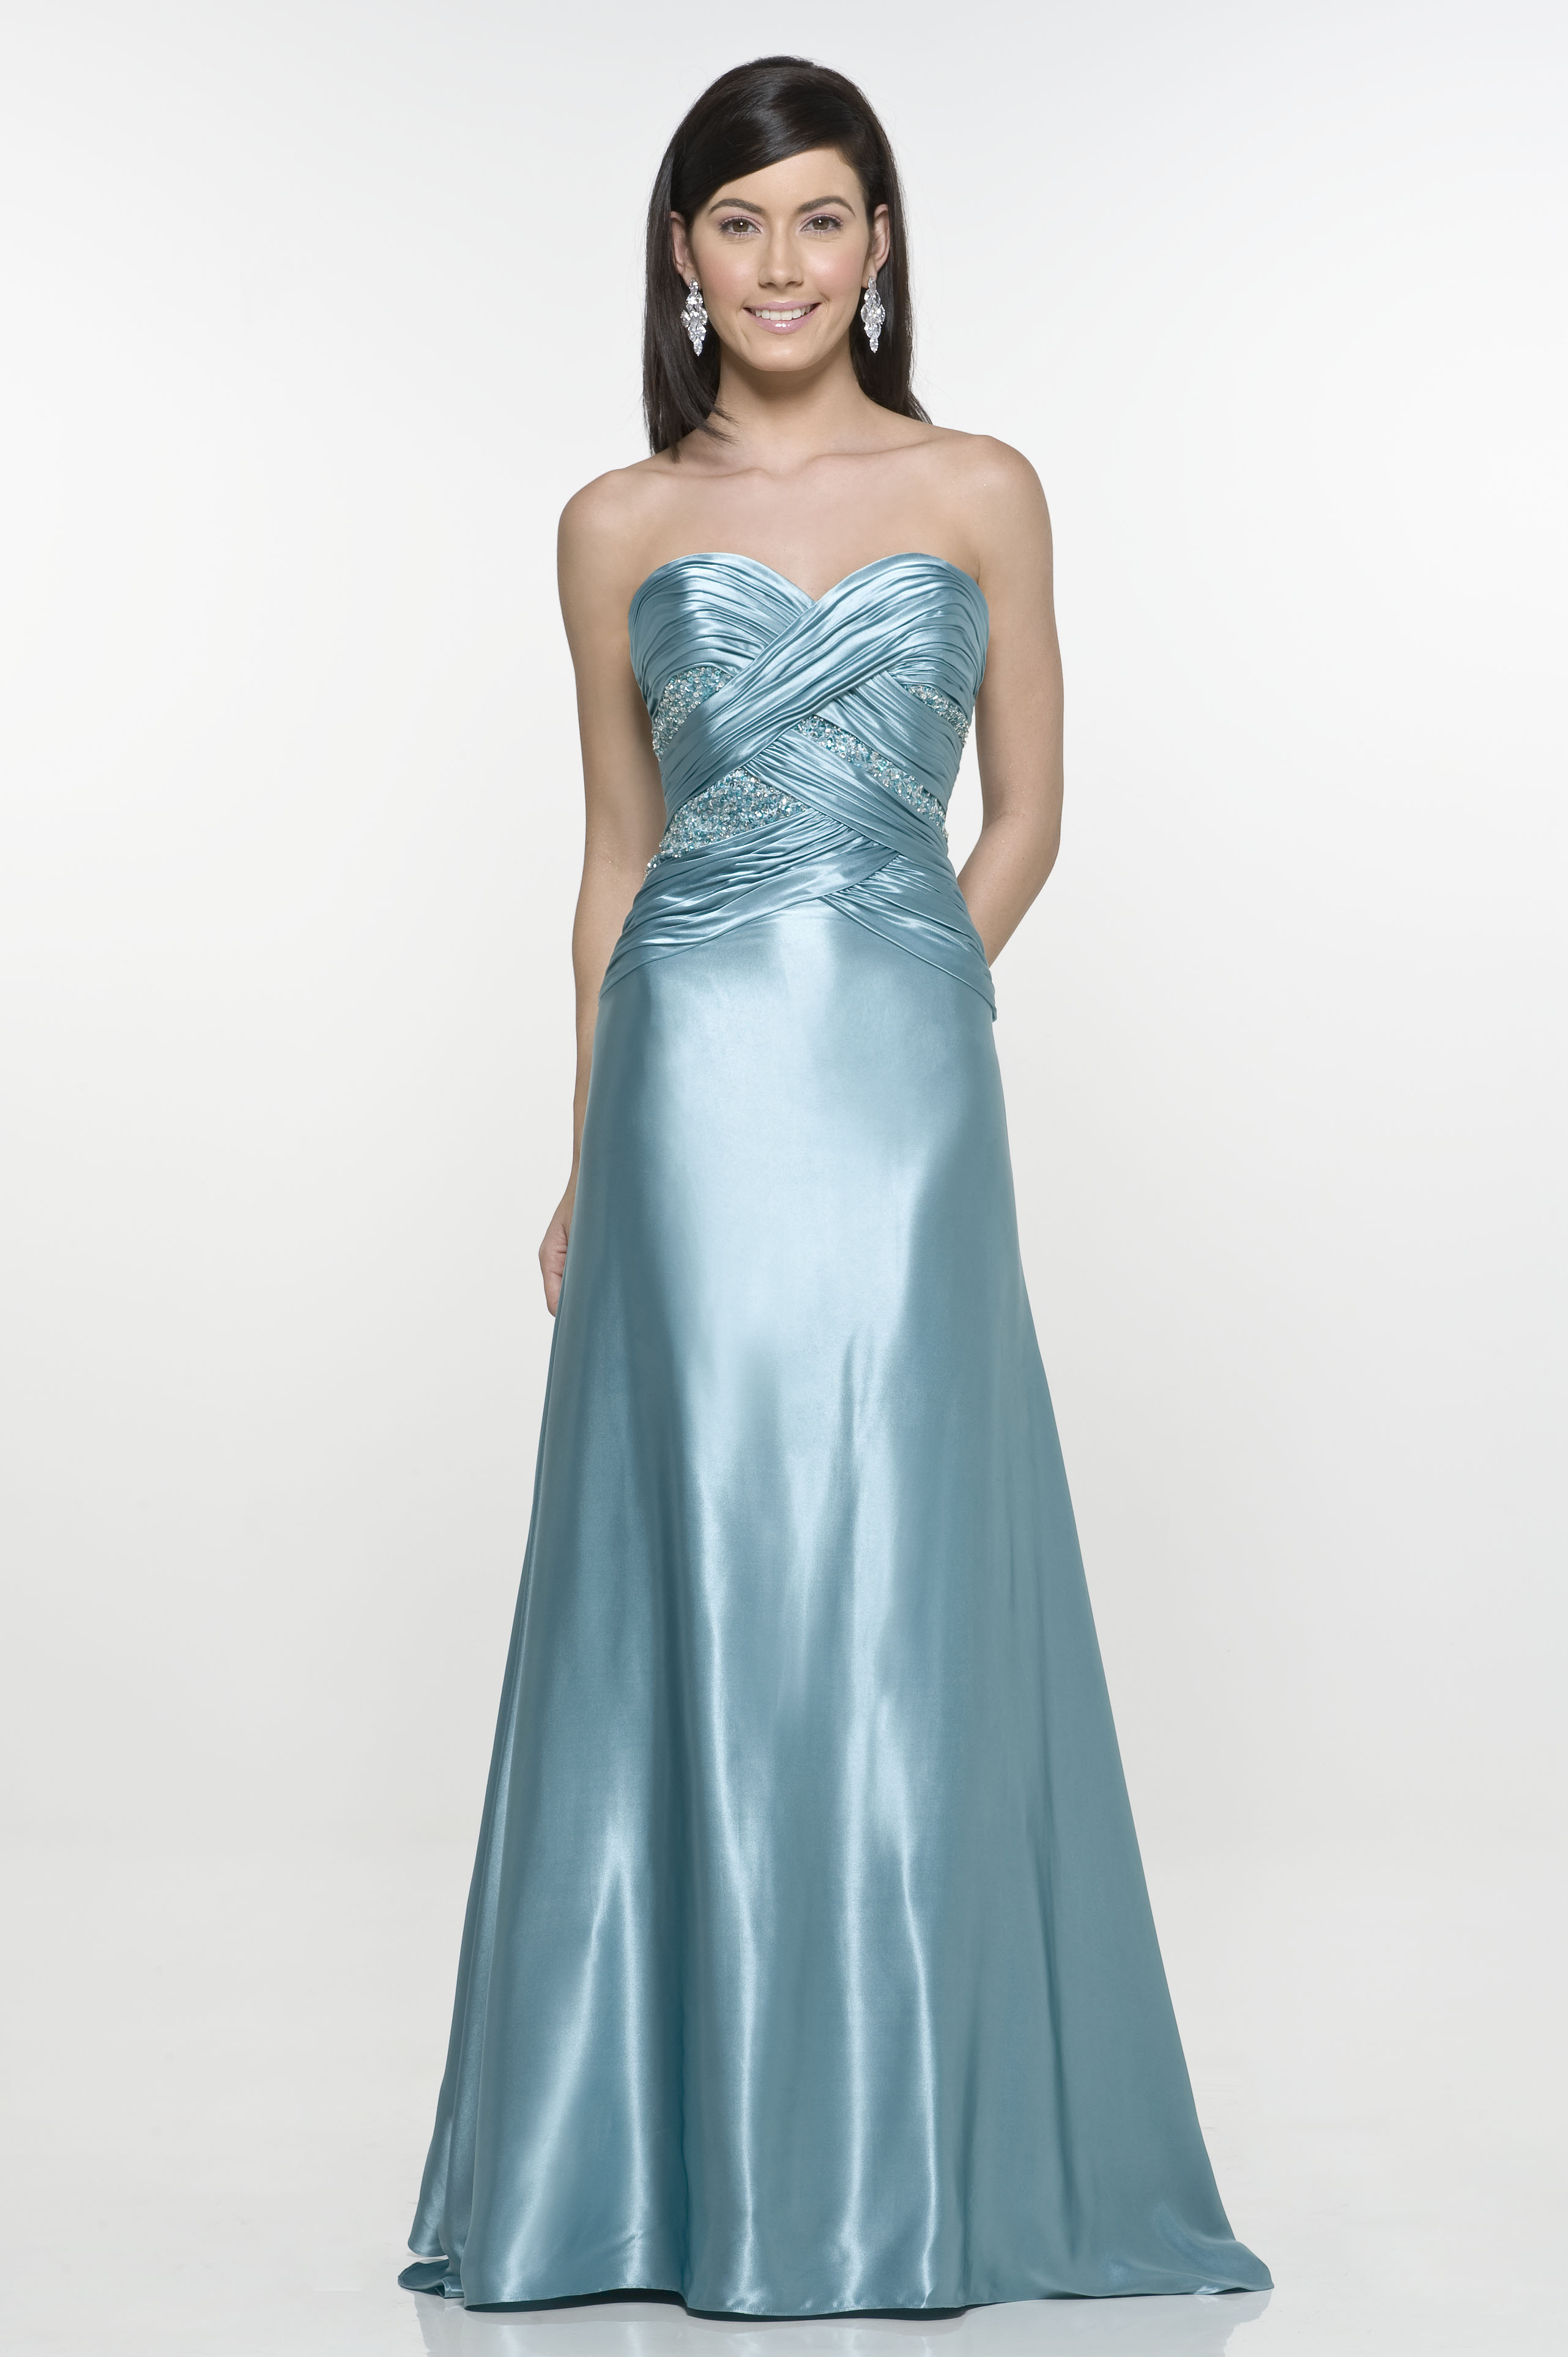 Prom Dresses 2010 - Cocktail Dresses 2016